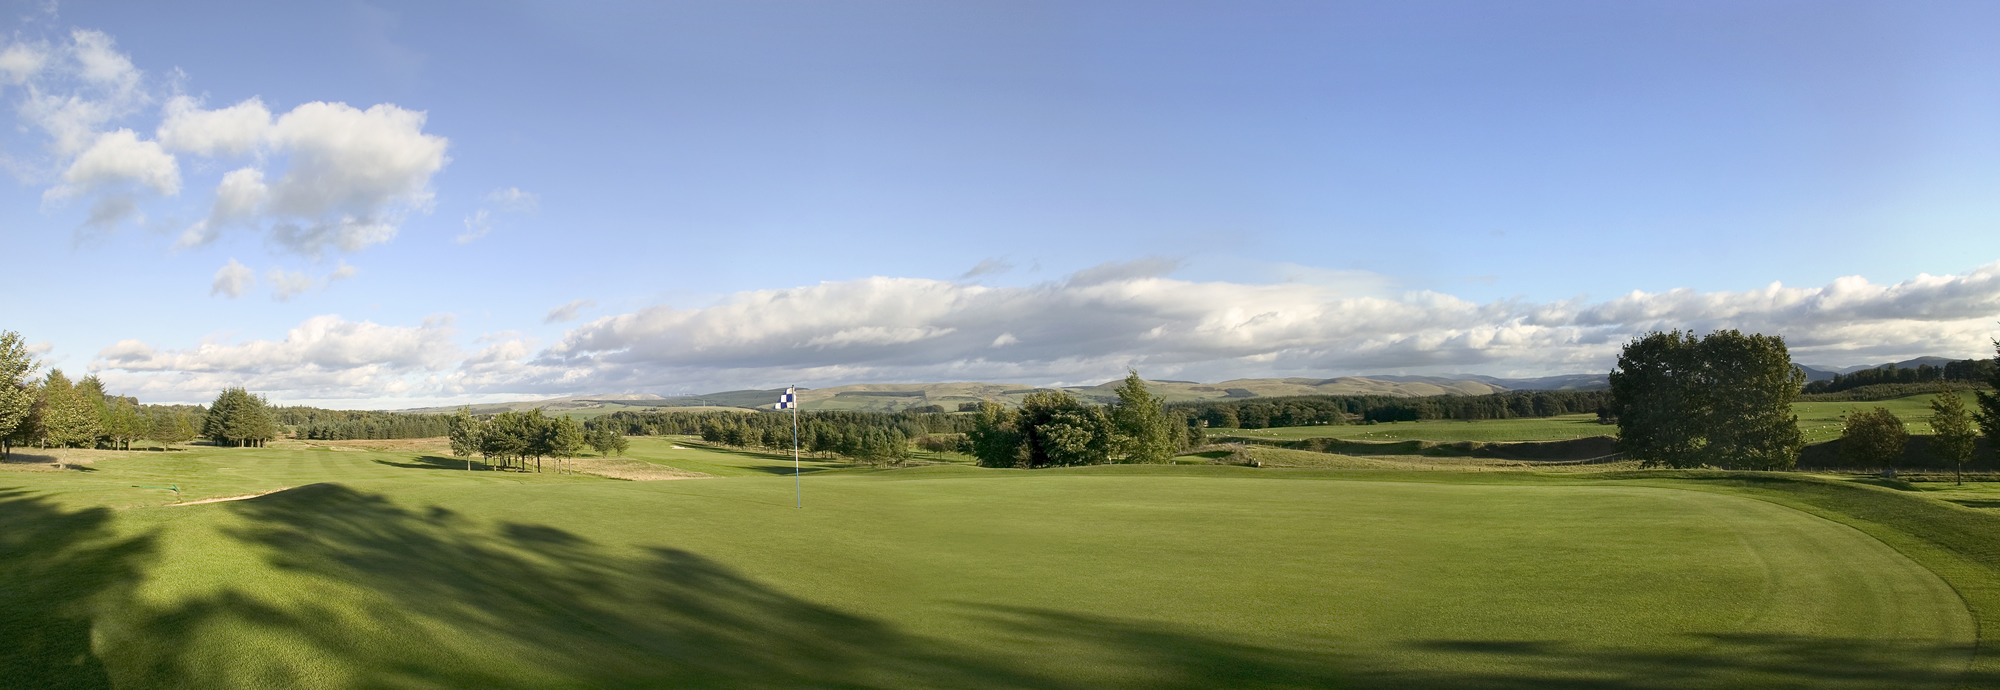 The 7th at West Linton Golf Club